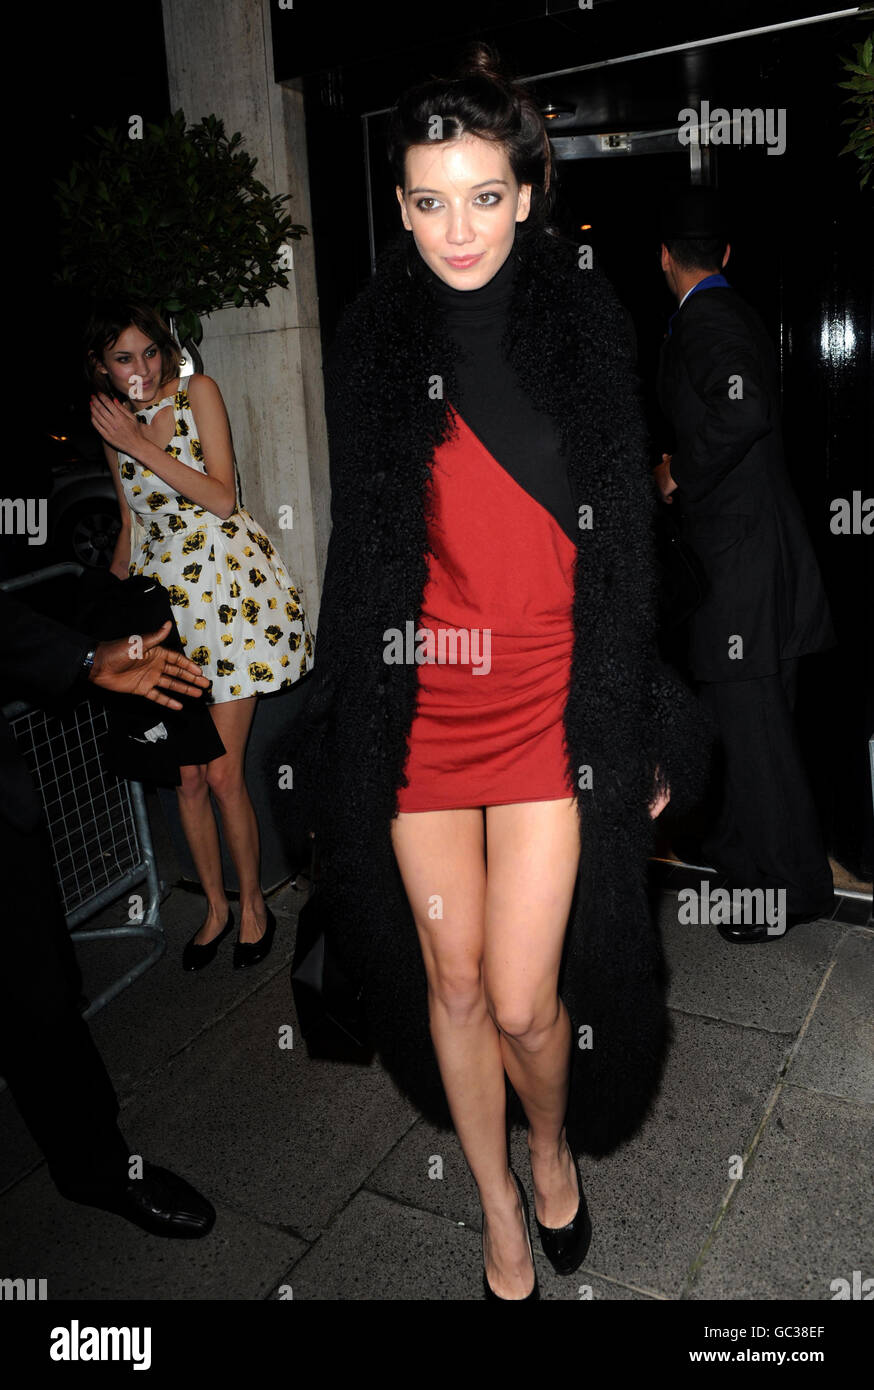 8f707921038 Vogue Private Dinner Party - London Stock Photo  110710615 - Alamy